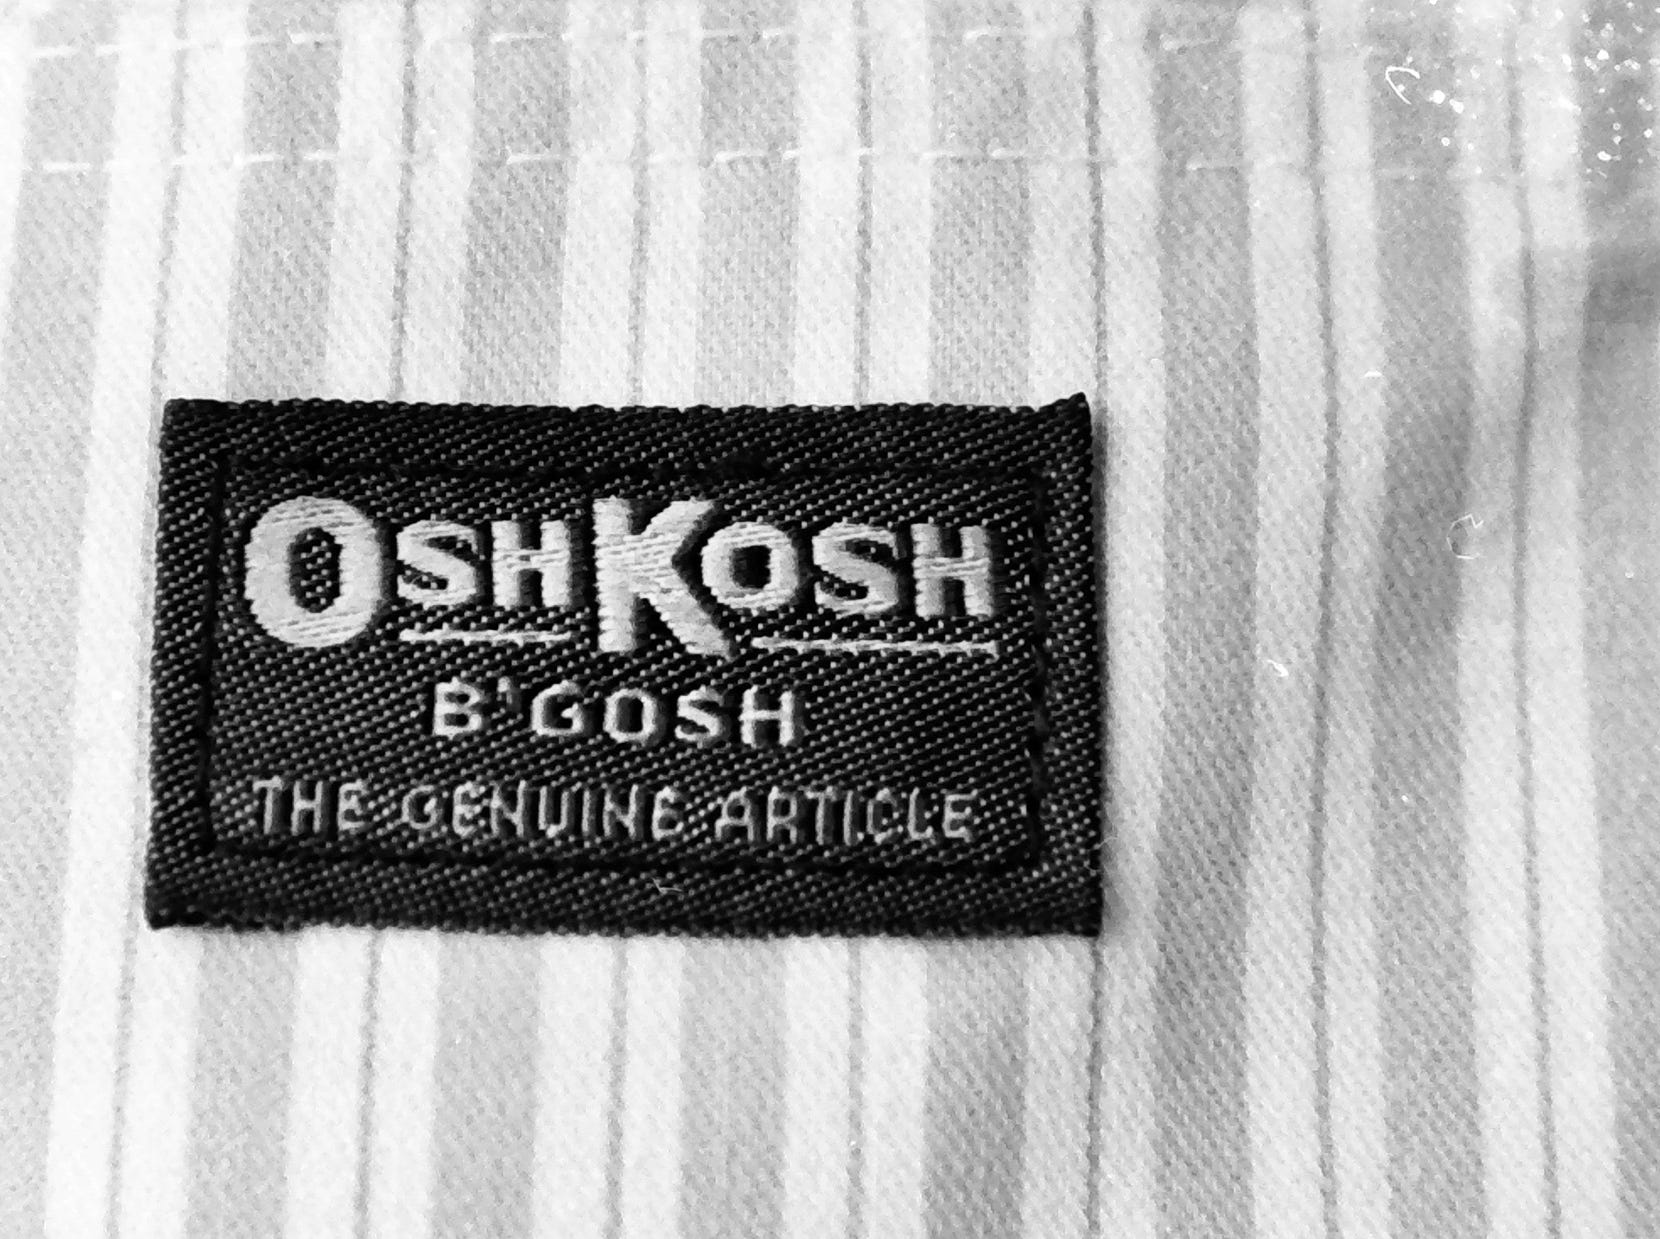 In 1985, OshKosh B'Gosh clothing was a thing.